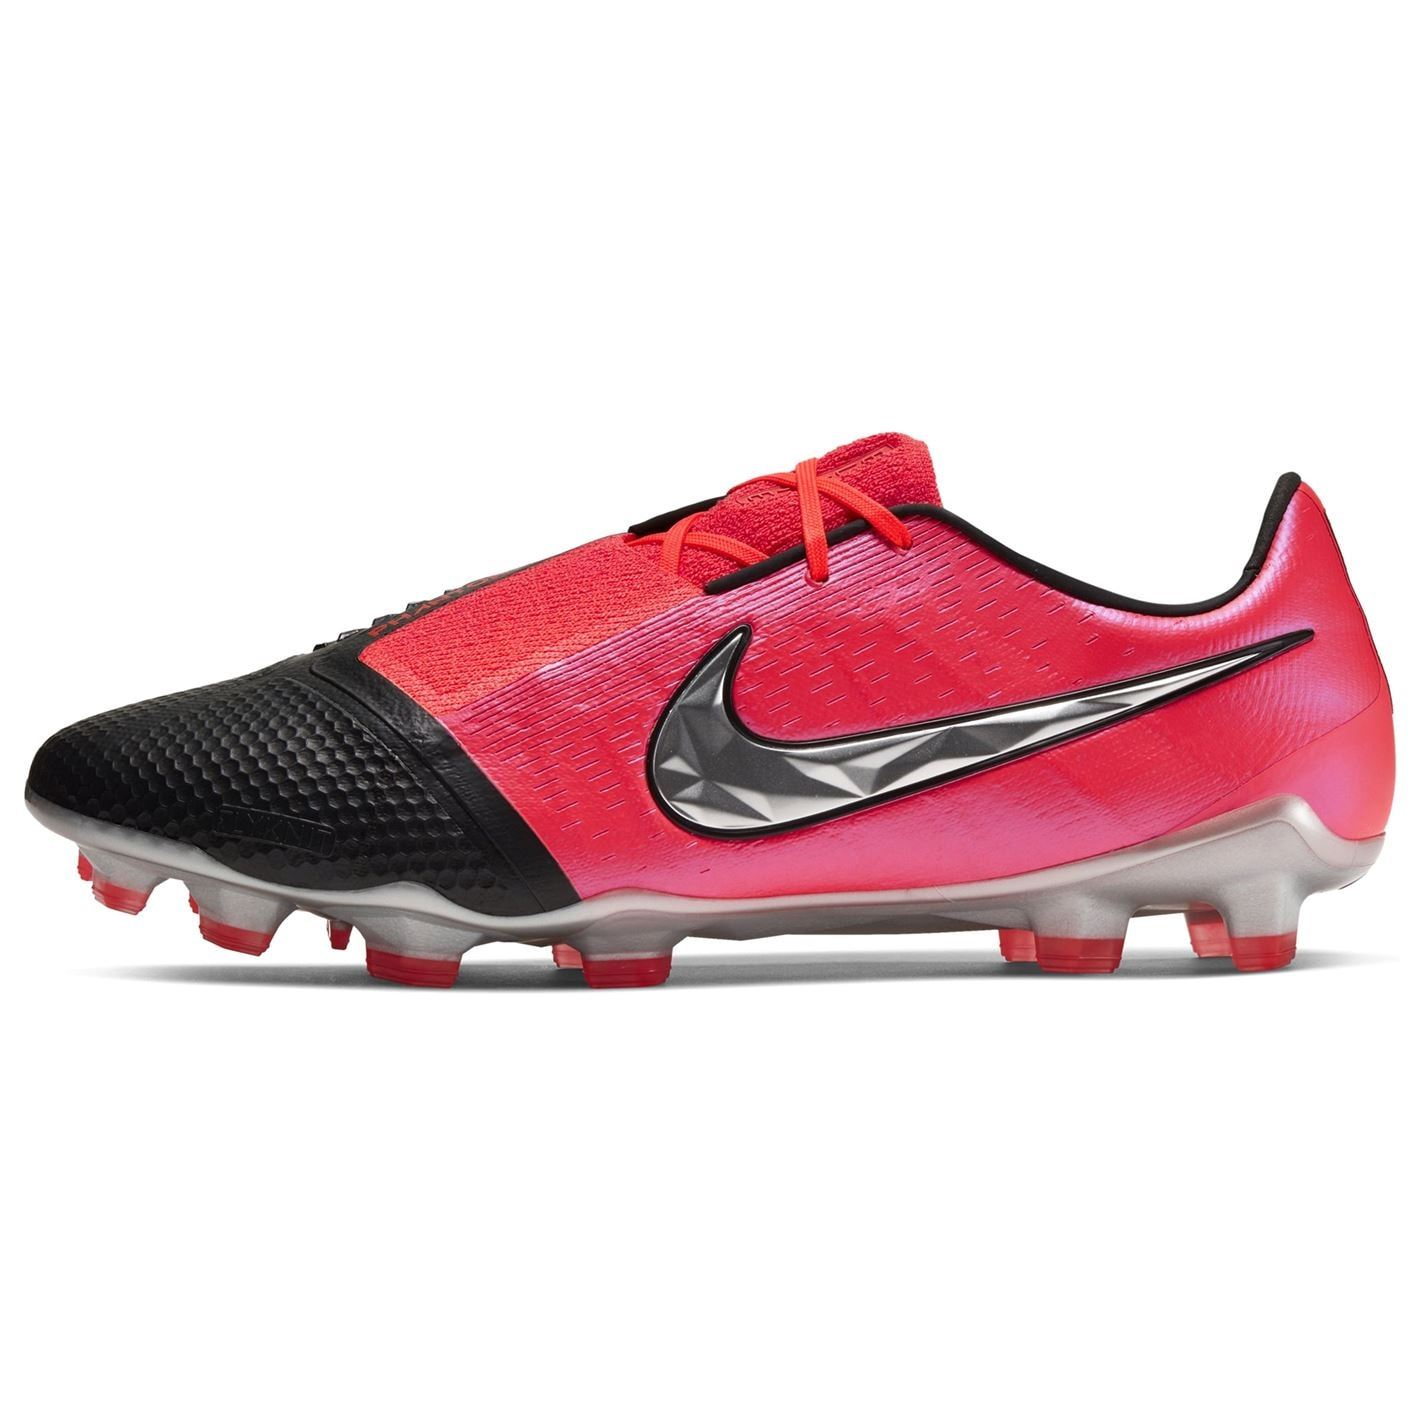 Nike-Phantom-Venom-Elite-Homme-FG-Firm-Ground-Chaussures-De-Football-Chaussures-de-foot-crampons miniature 11